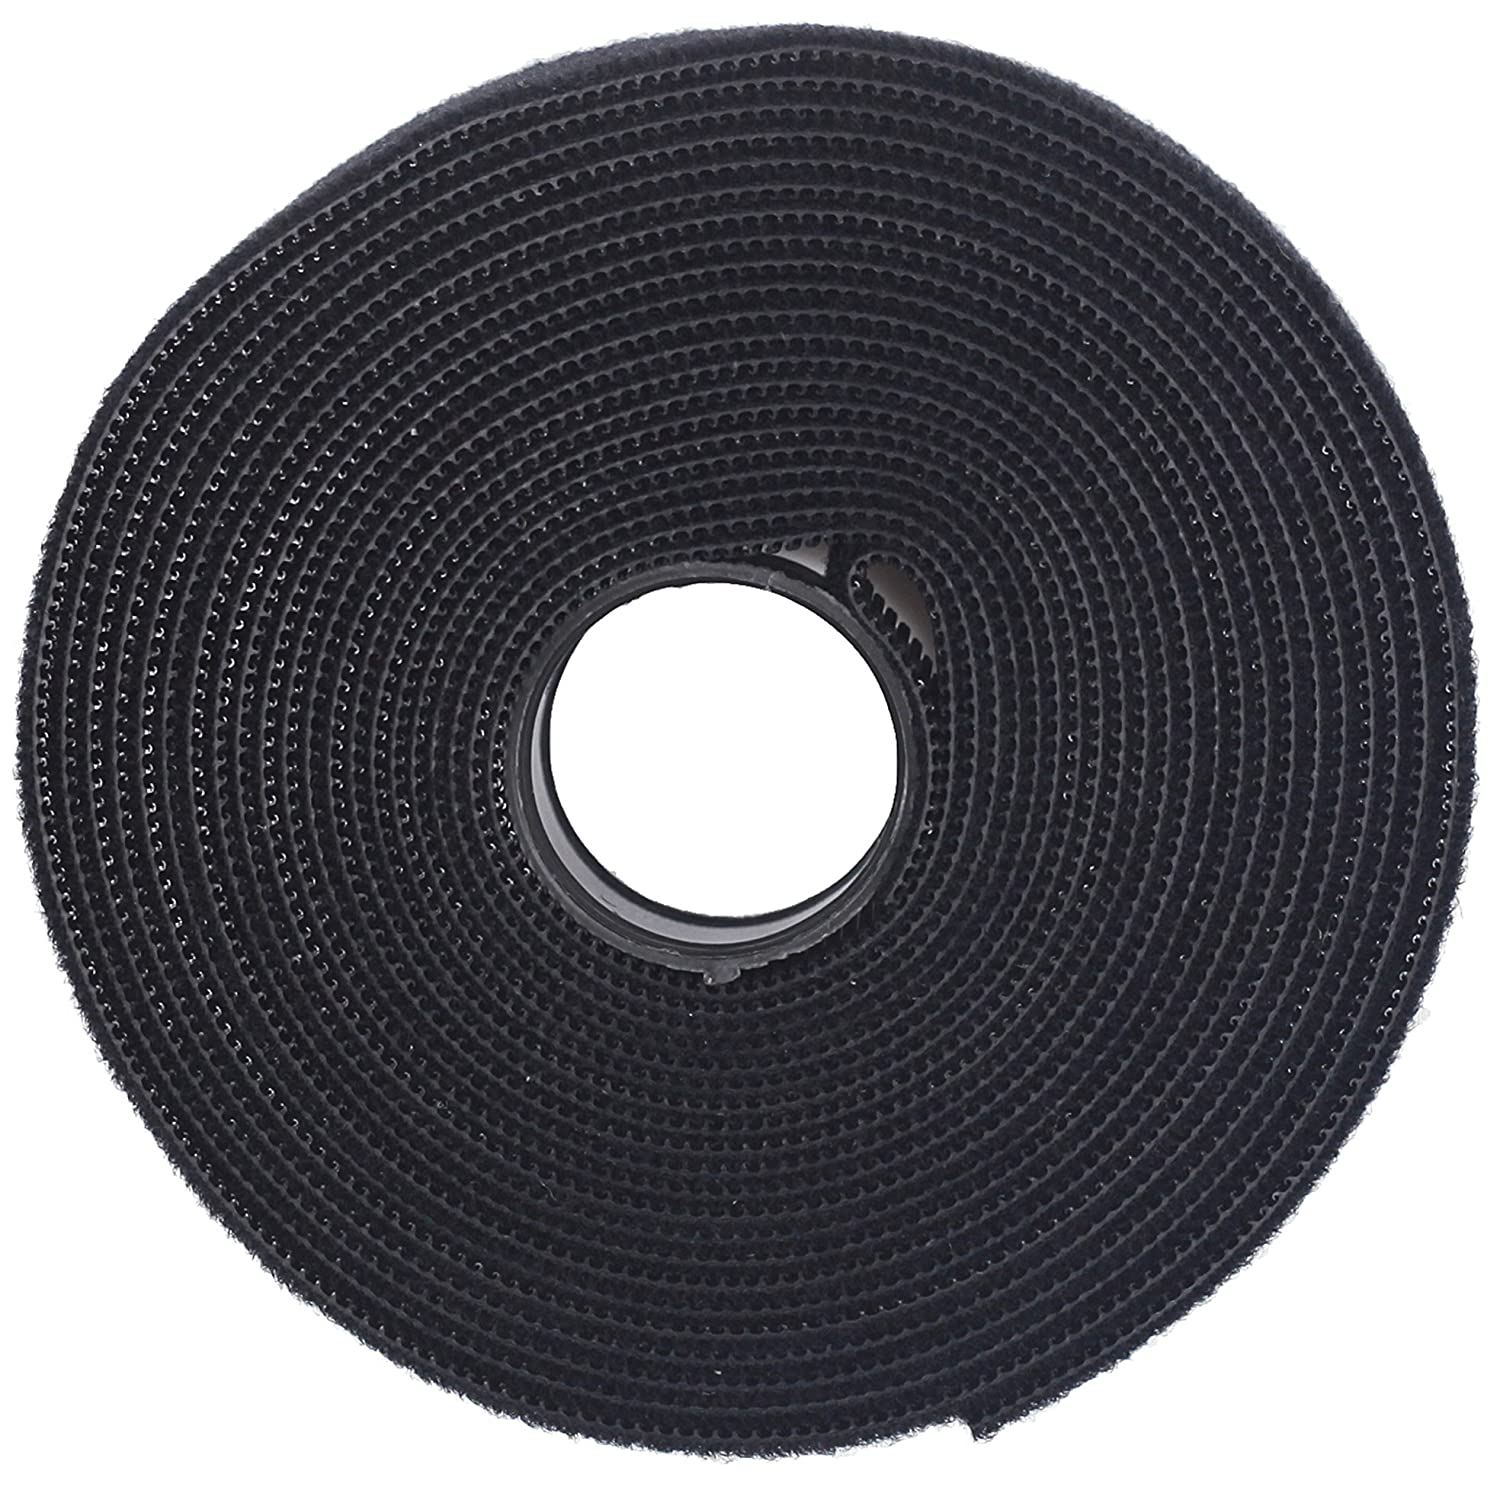 2534c98d6b1 Amazon.com  Nylon Cable Tie Roll (3 4 Inch x 5 Yards) Black - Reusable  Nylon Strap - Double Side Hook   Loop - Power Cords Wires Management - One  Wrap ...